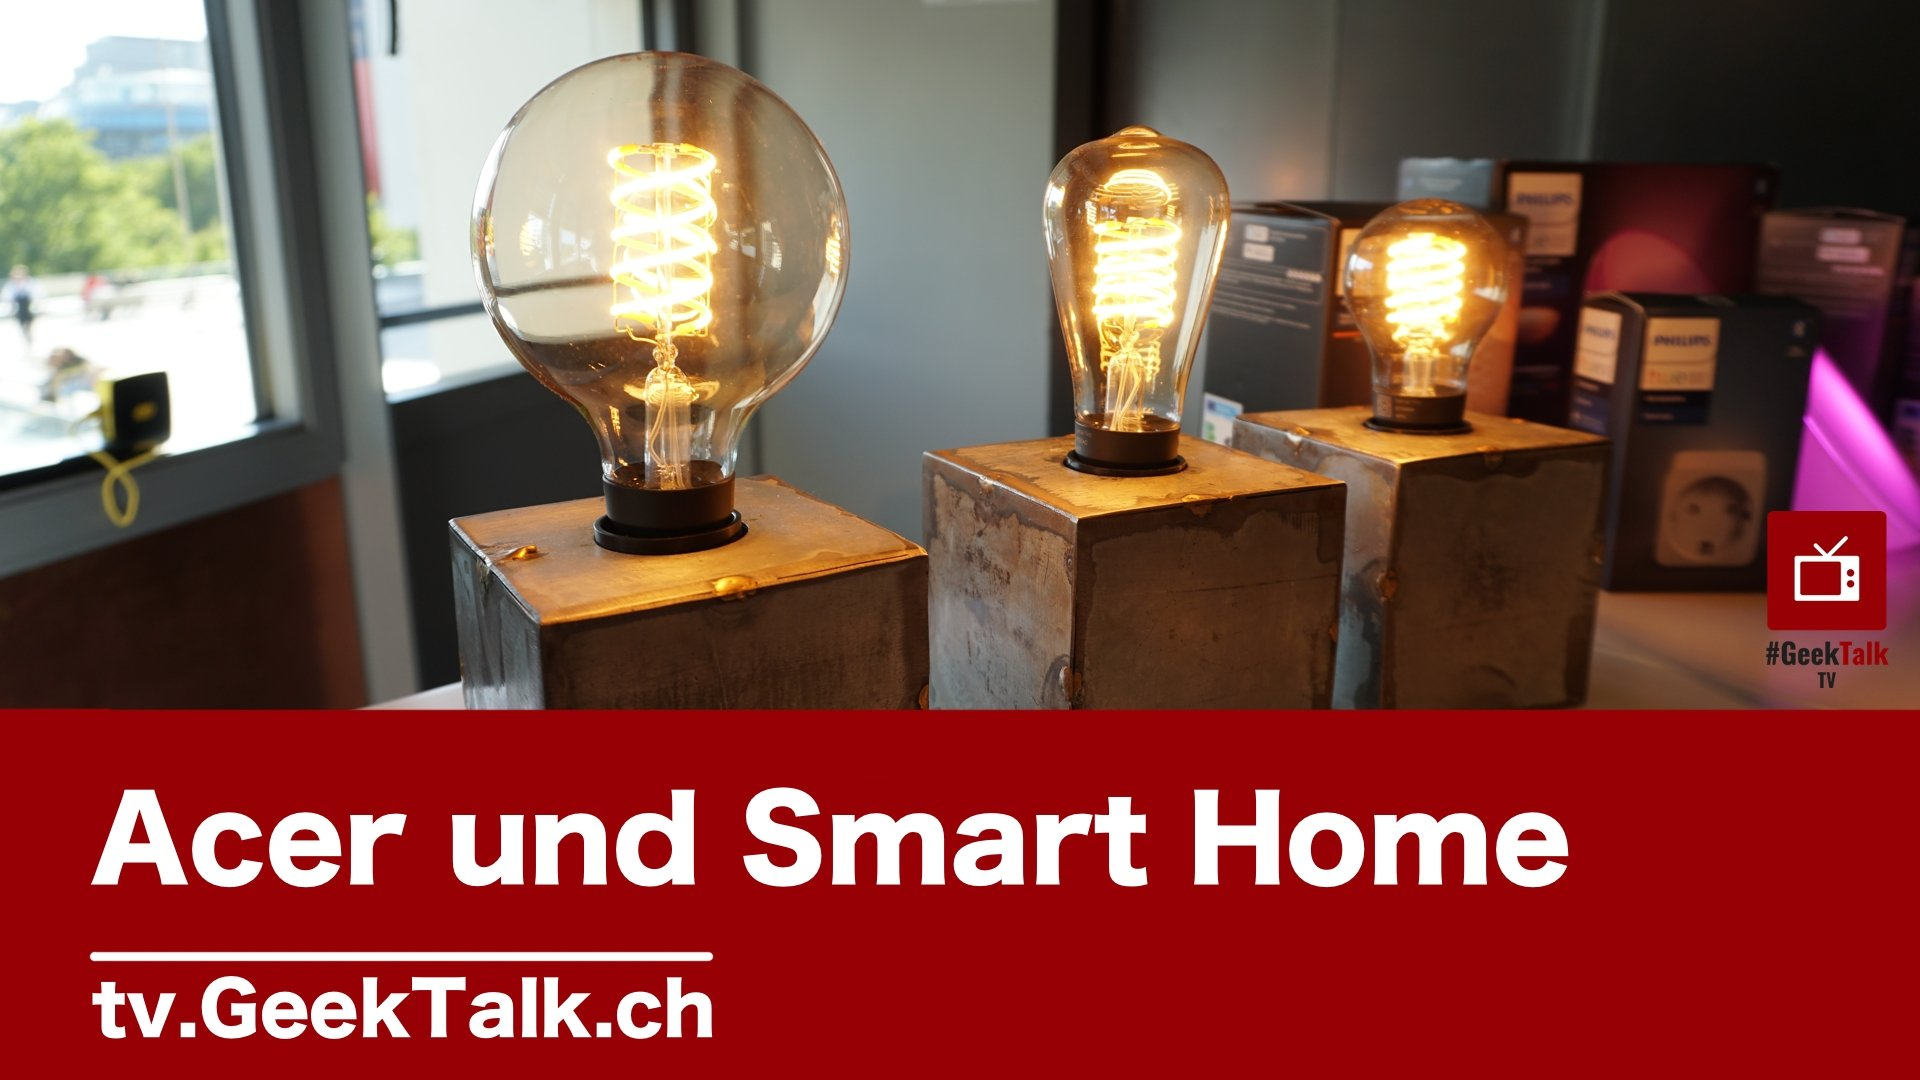 Tag 1 #IFA2019: Video zur Acer Pressekonferenz und Smart Home Gadgets